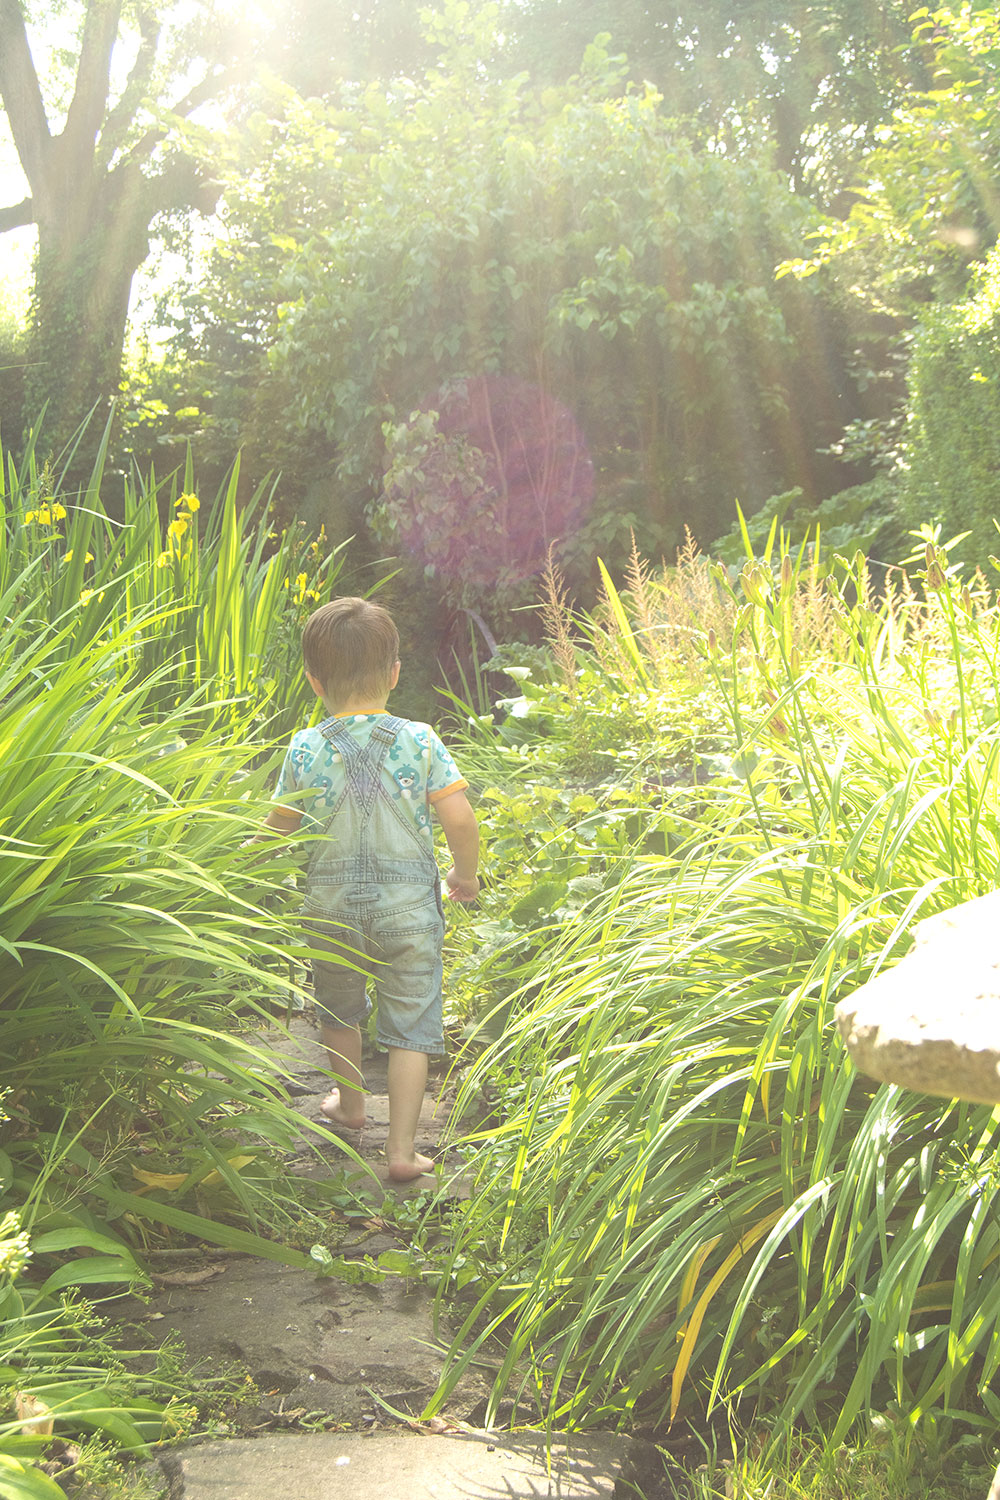 The Magic of a Waterfall {To Adventure #1} - Young boy wearing Maxomorra seal print t-shirt and denim dungarees playing in a magical garden and wading in a stream and waterfall fishing amongst the plant life and swinging on the bridge